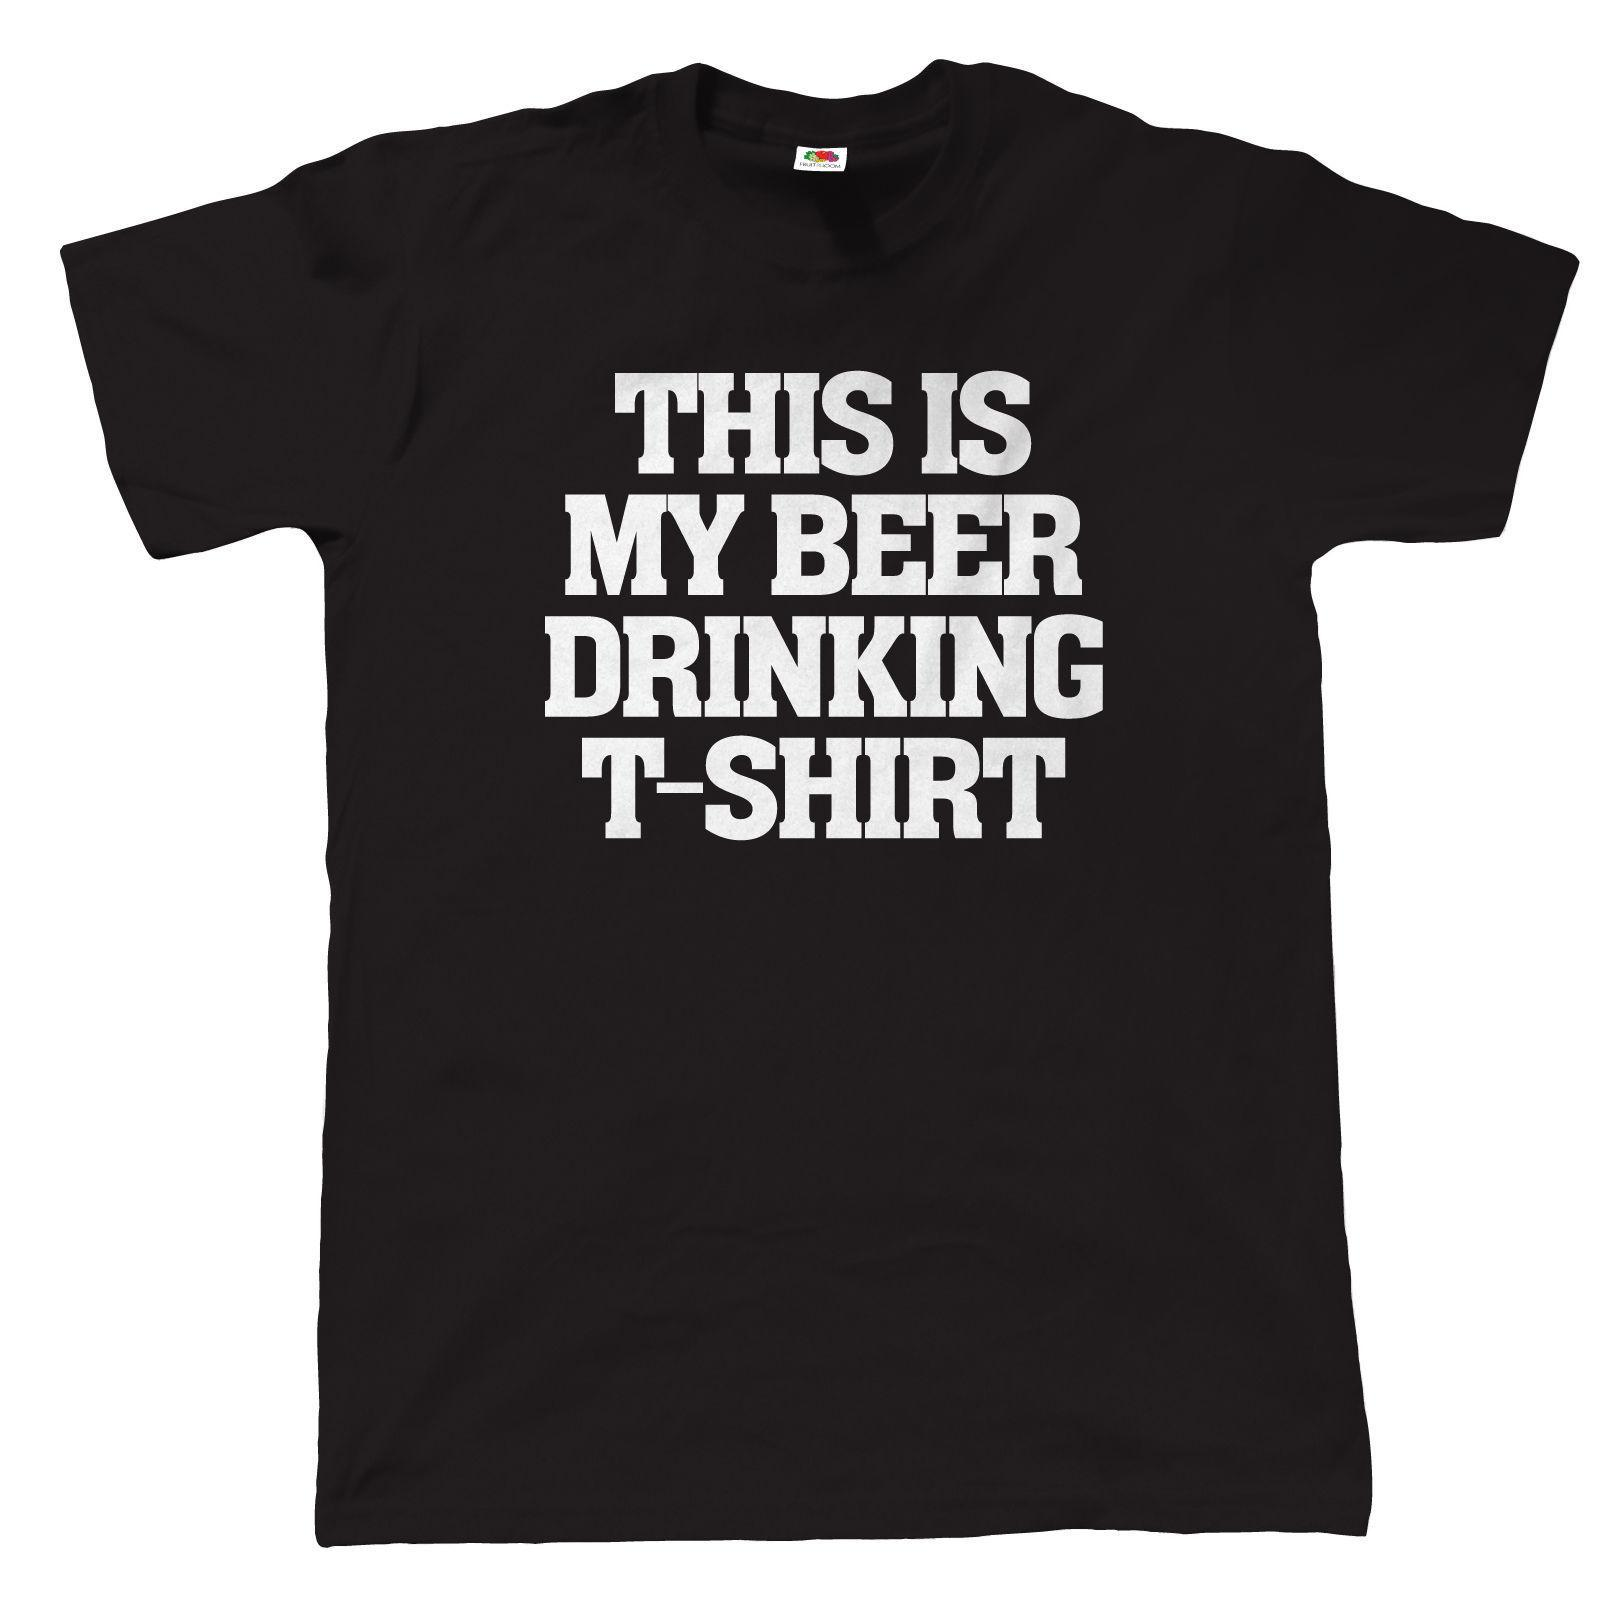 b0ee3cce This Is My Beer Drinking T Shirt Gift For Dad Birthday CAMRA Real Ale Cool  Casual Pride T Shirt Men Unisex New Fashion Tshirt T Shirt Shop Design  Crazy T ...